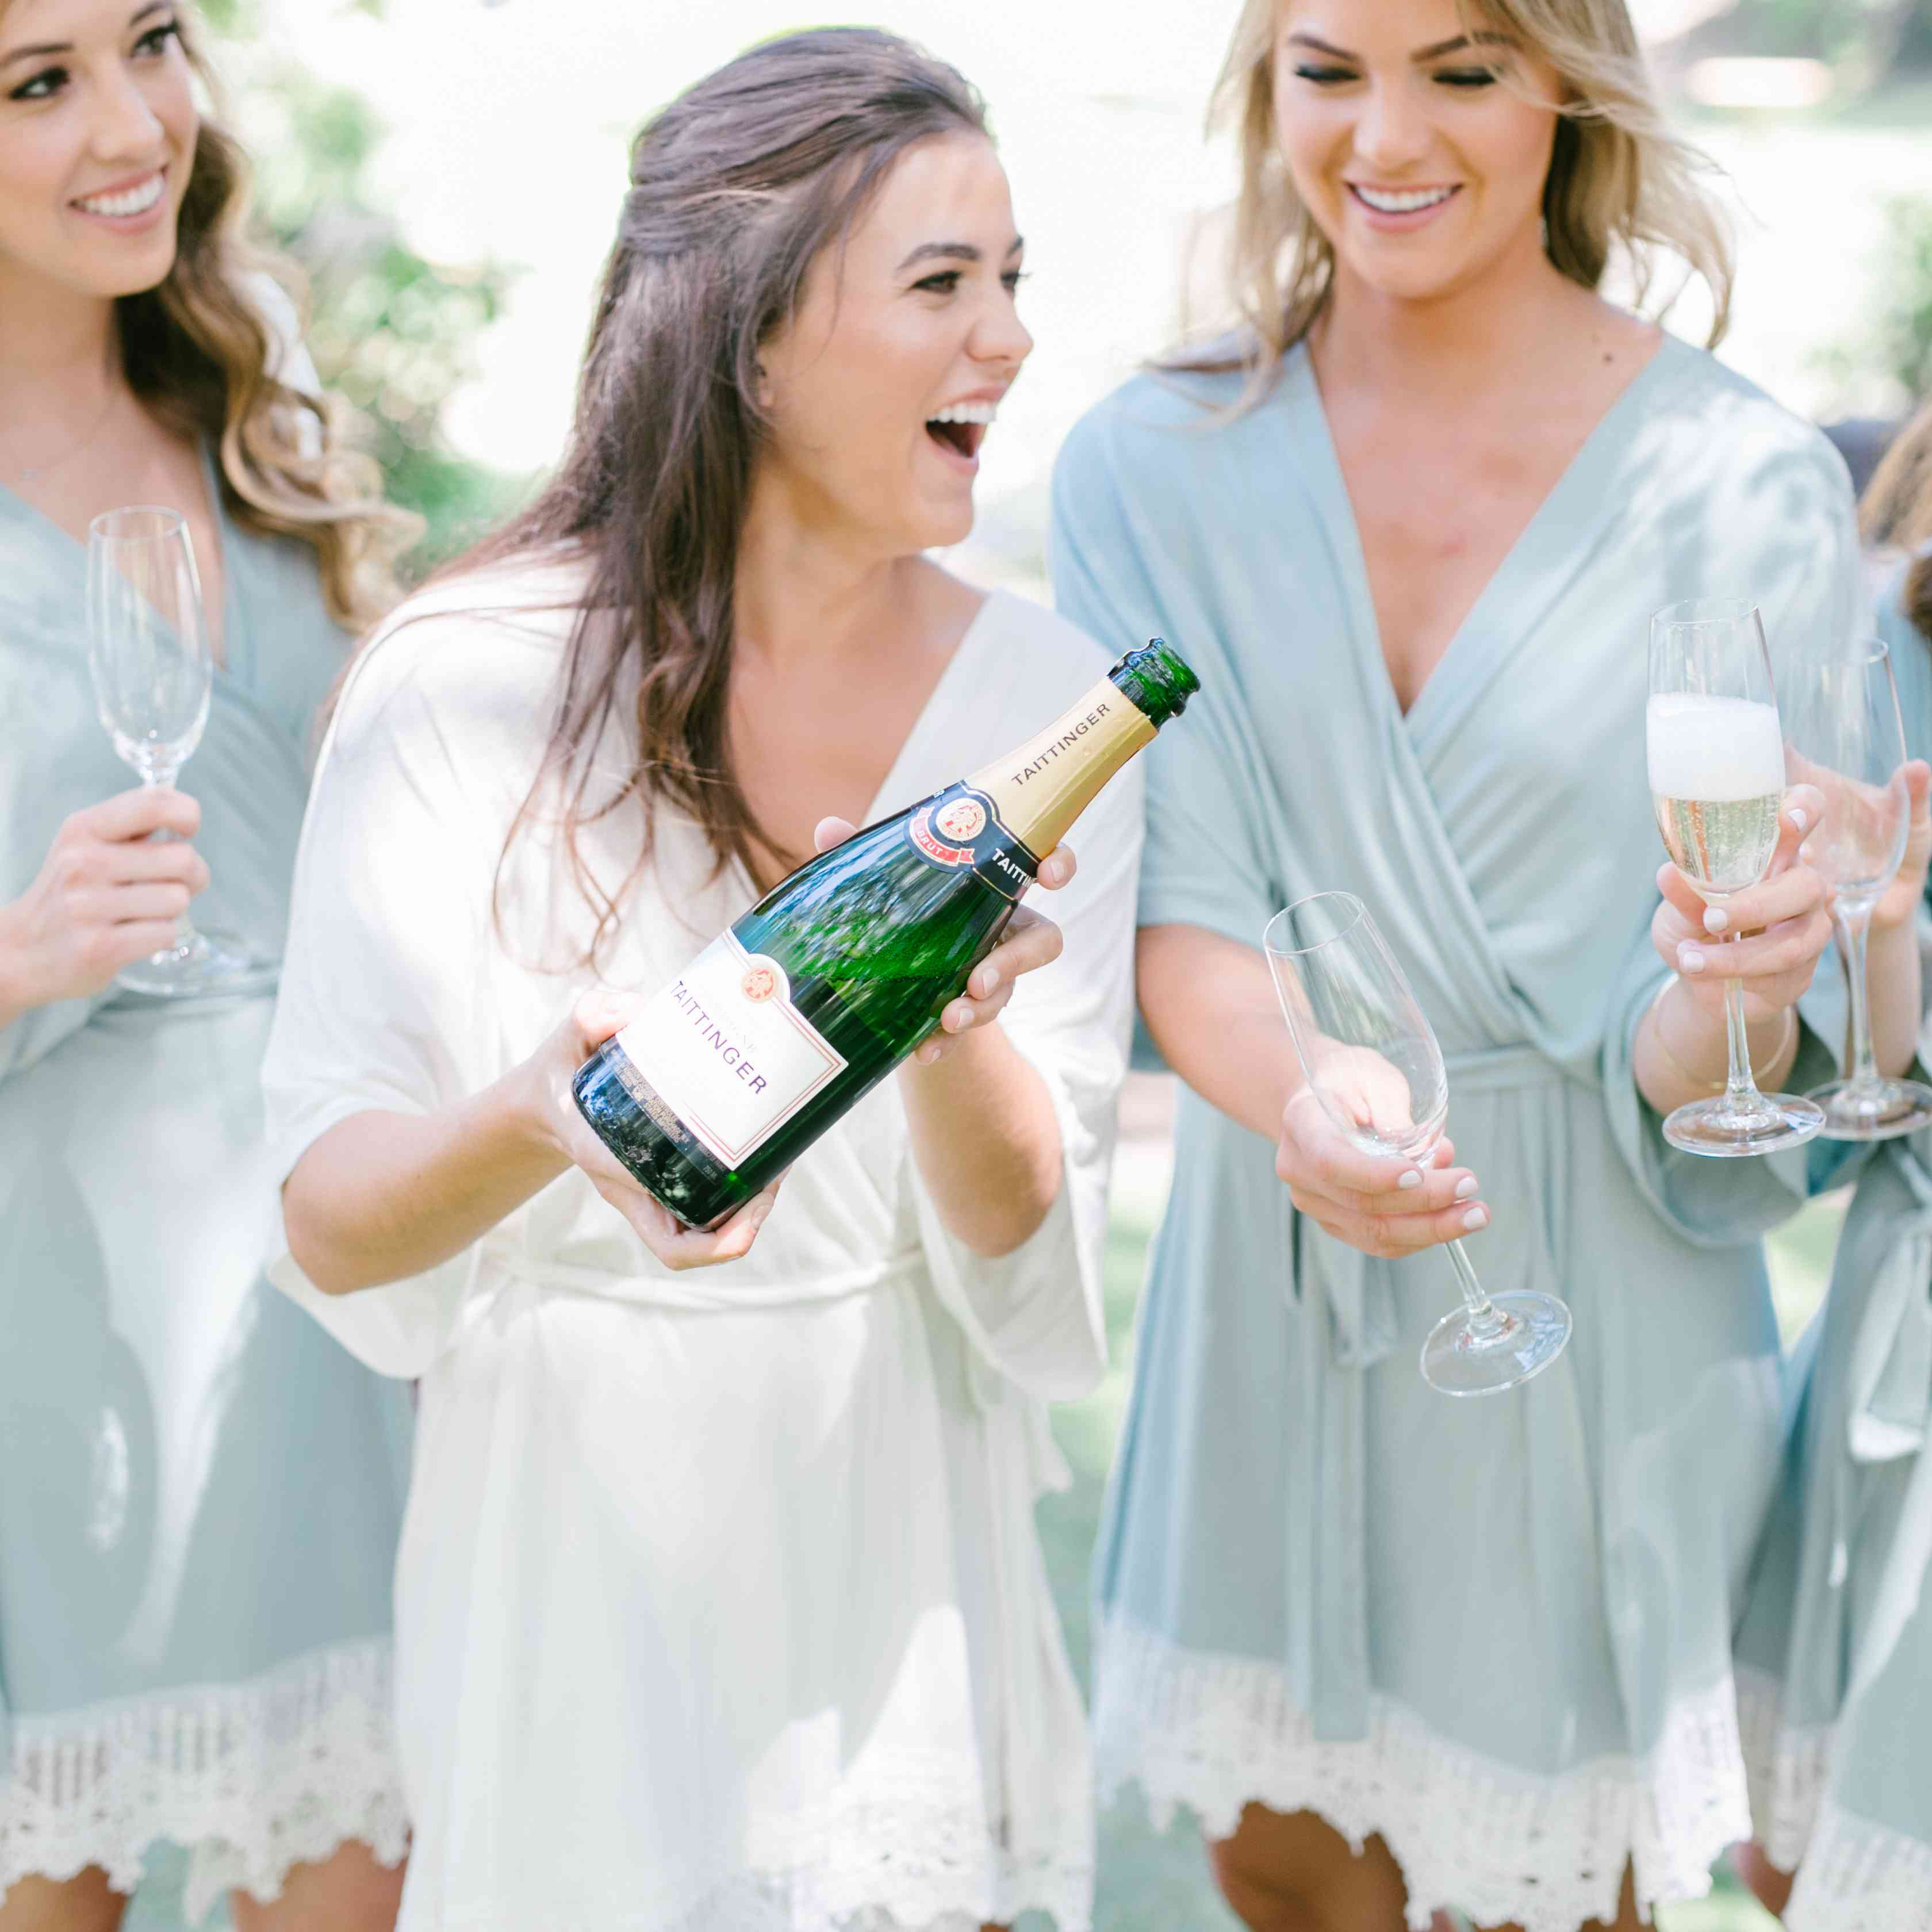 bride and bridesmaids getting ready with champagne